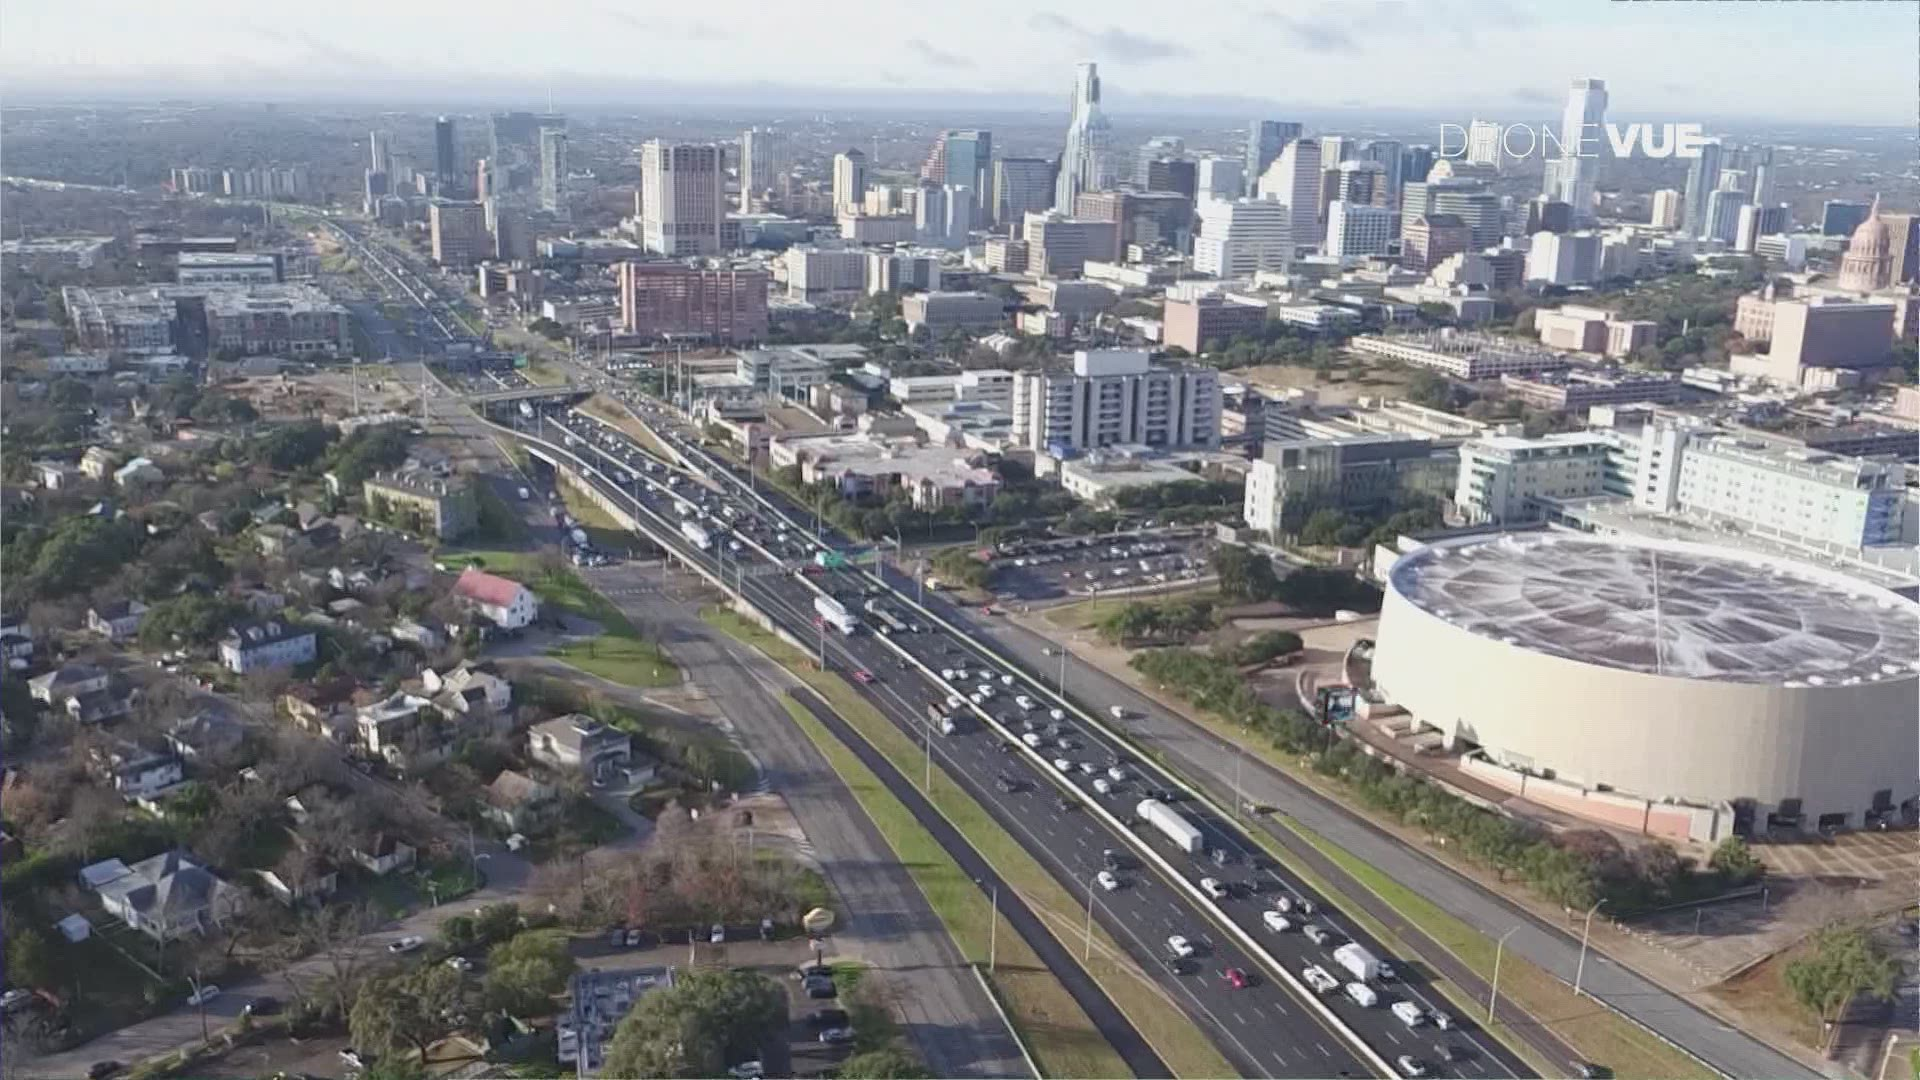 Austin council raises concerns over TxDOT's I-35 expansion proposal |  kvue.com